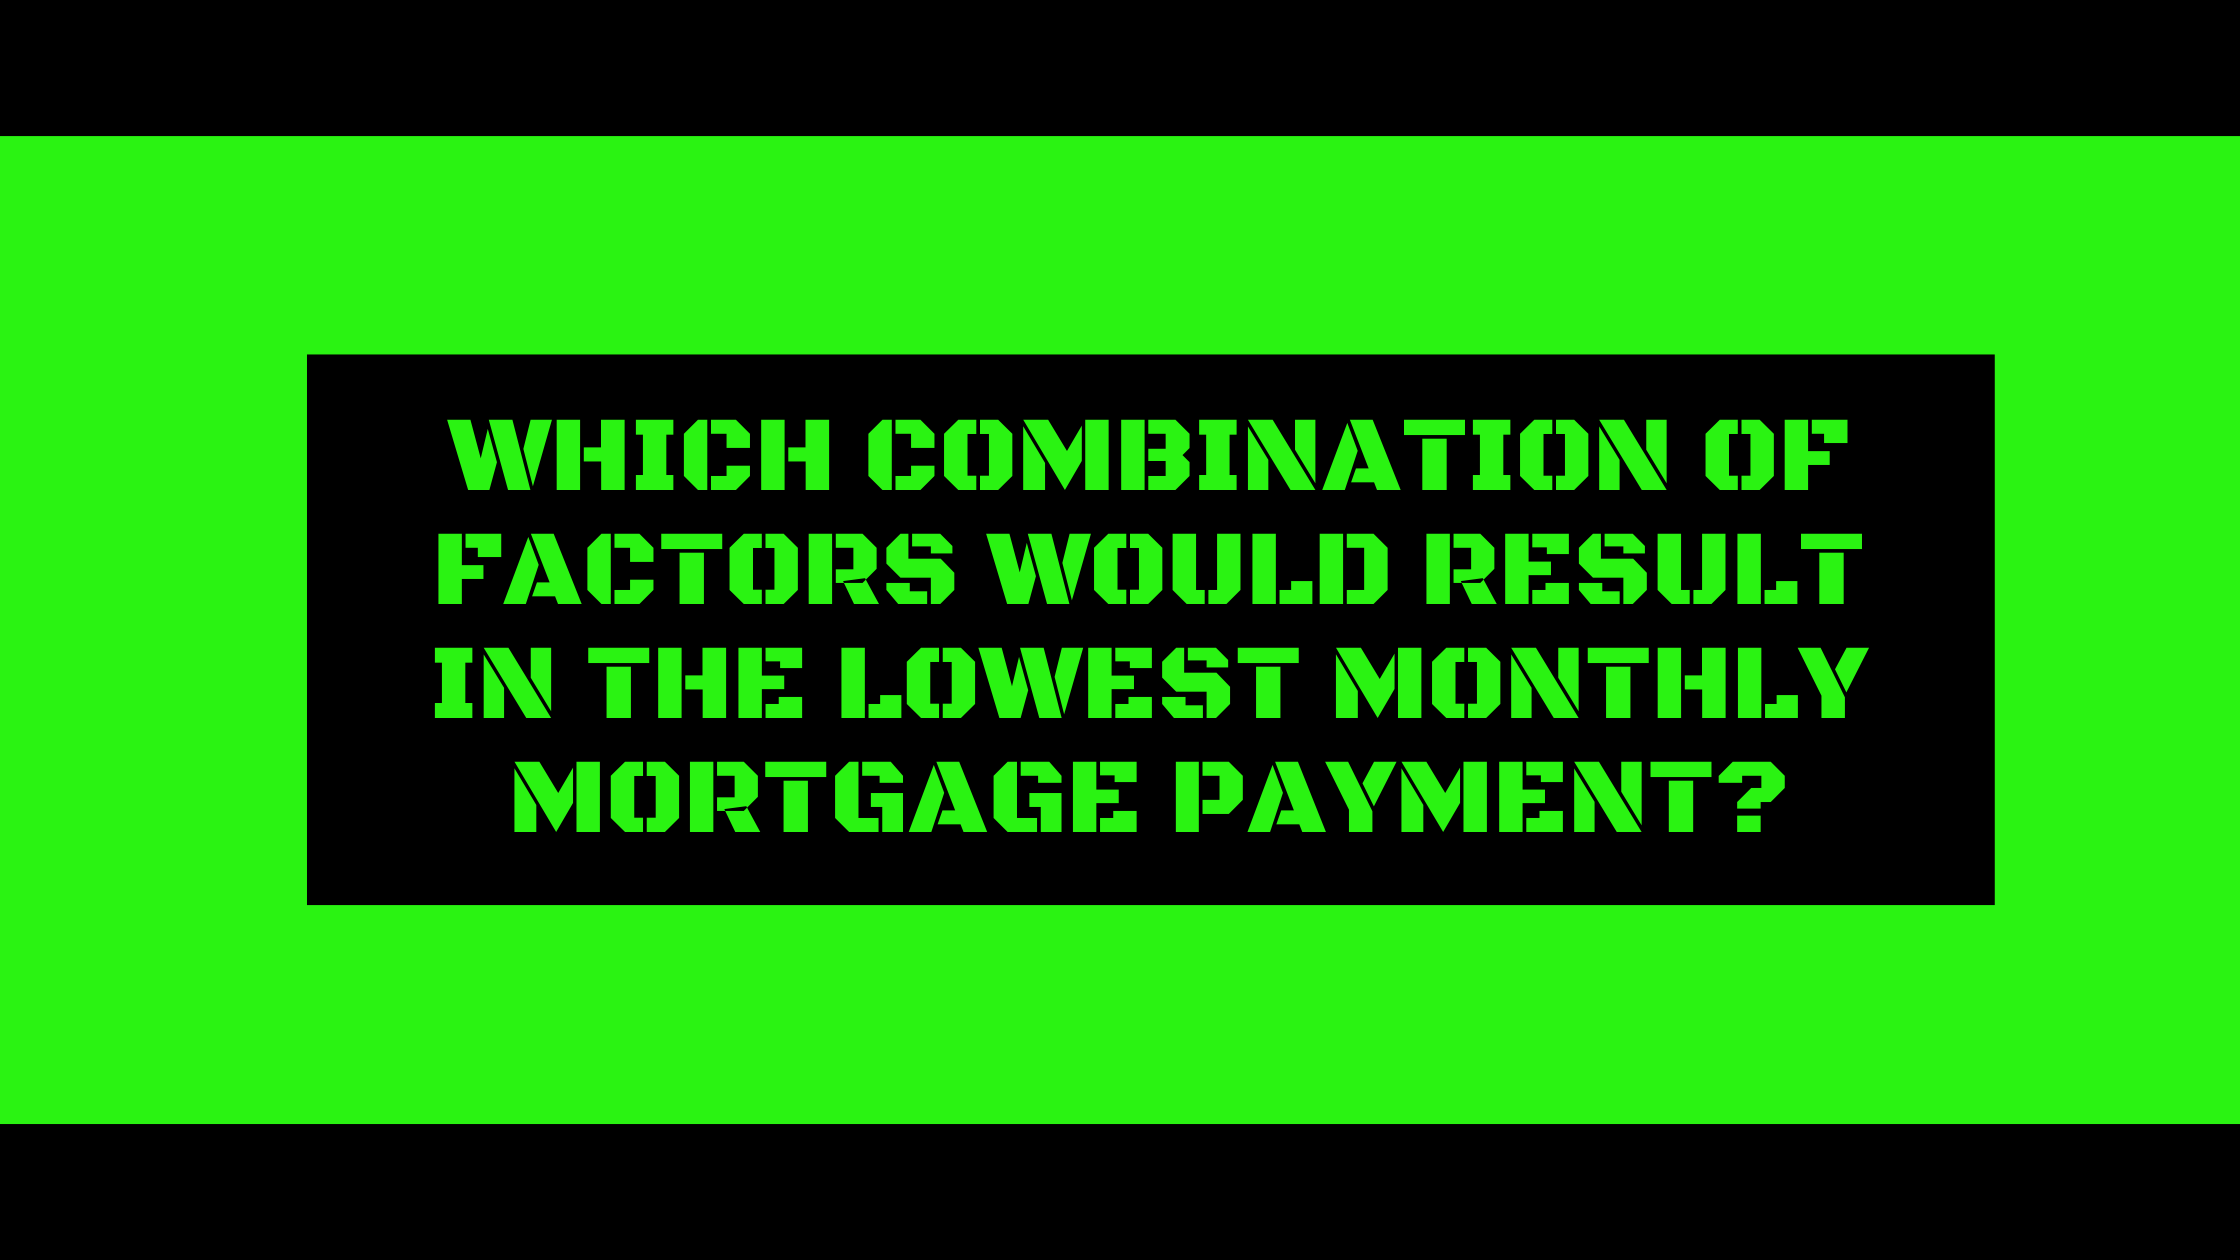 Which combination of factors would result in the lowest monthly mortgage payment